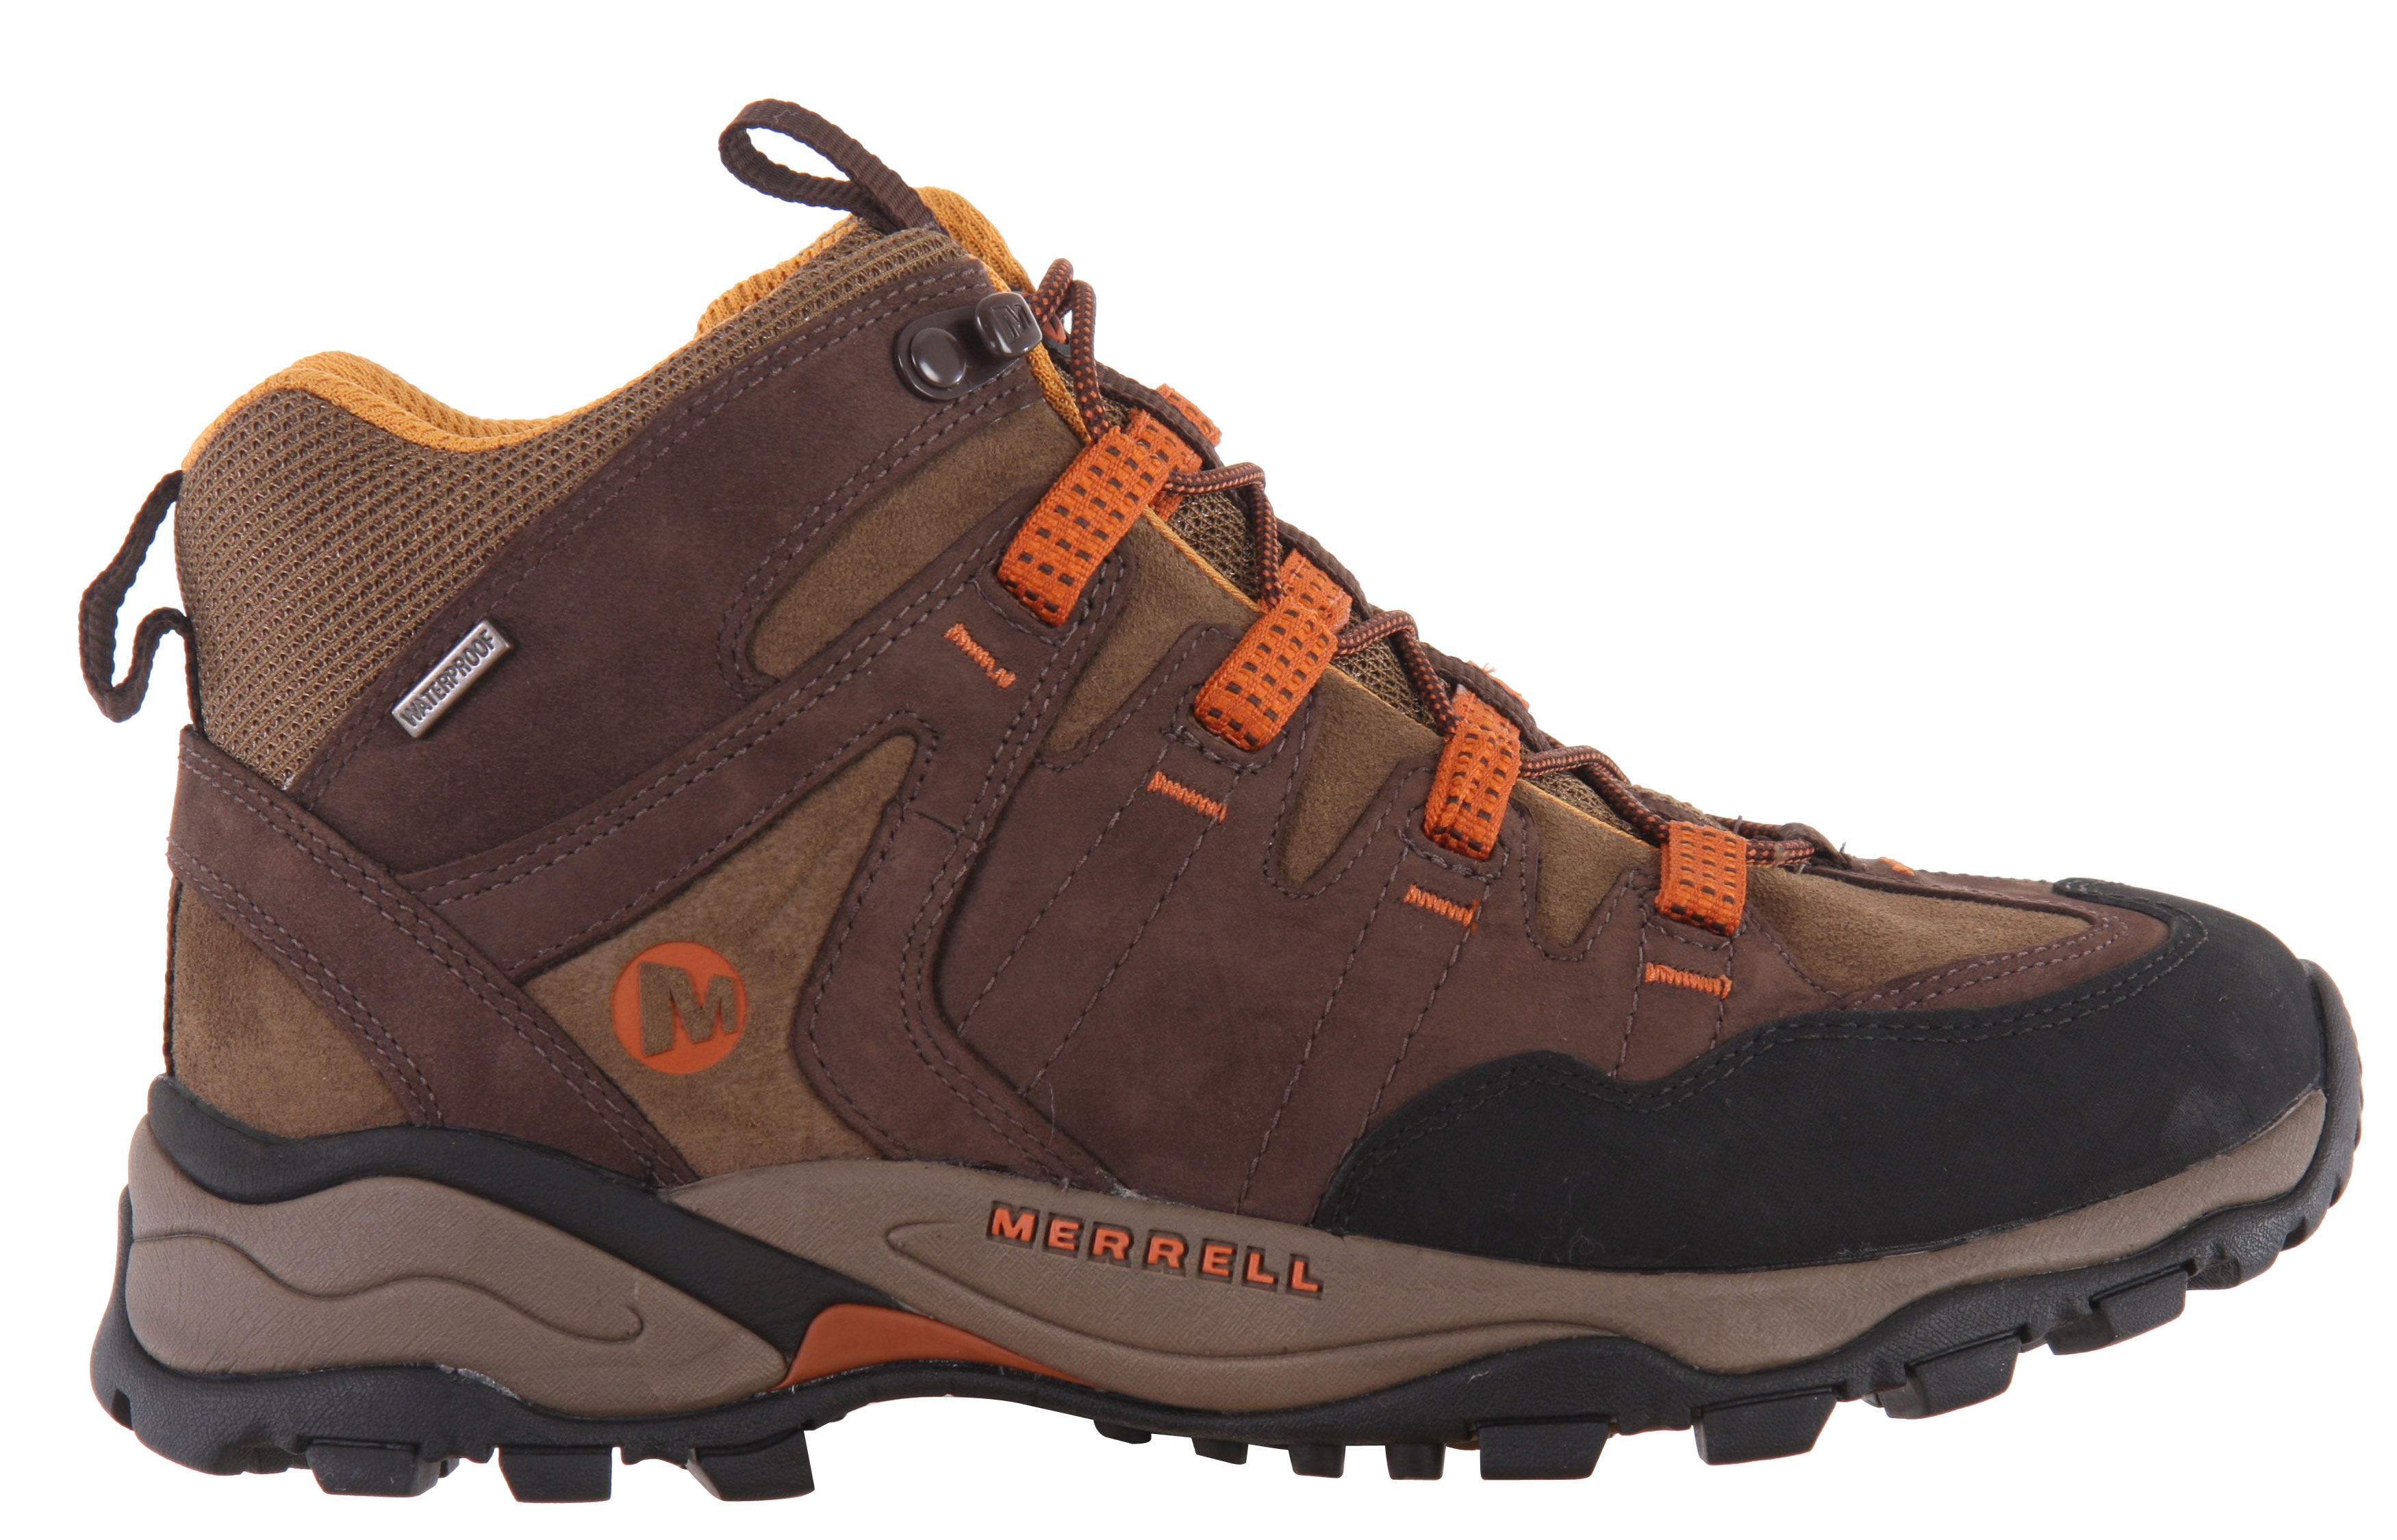 Camp and Hike You can play around with Mother Nature longer and through it all in omni-comfort when you're cinched into these empowered explorers - Merrell Pandora Mid Omni Fit Hiking Shoe. A wider platform anchored by aggressive lugs instills confidence in a pretty package, and its antimicrobial waterproof lining keeps water where it and you belong,outside.Key Features of the Merrell Pandora Mid Omni Fit Hiking Shoes: Strobel construction offers flexibility and comfort Nubuck, pig suede leather and mesh upper Omni-Fit Lacing system provides a precise, glove-like it Bellows tongue keeps debris out Abrasion resistant toe cap Waterproof Membrane treated with an antimicrobial solution provides impermeable but breathable barrier Breathable mesh lining treated with an antimicrobial solution maintains foot comfort Recycled Poliyou footbed with active carbon to control moisture and ensures breathability Molded nylon arch shank QForm Comfort midsole provides women's specific stride-sequenced cushioning Merrell Air Cushion in the heel absorbs shock and adds stability 5.0mm Sole lug depth Vibram Pandora Sole/TC5+ Rubber - $74.95